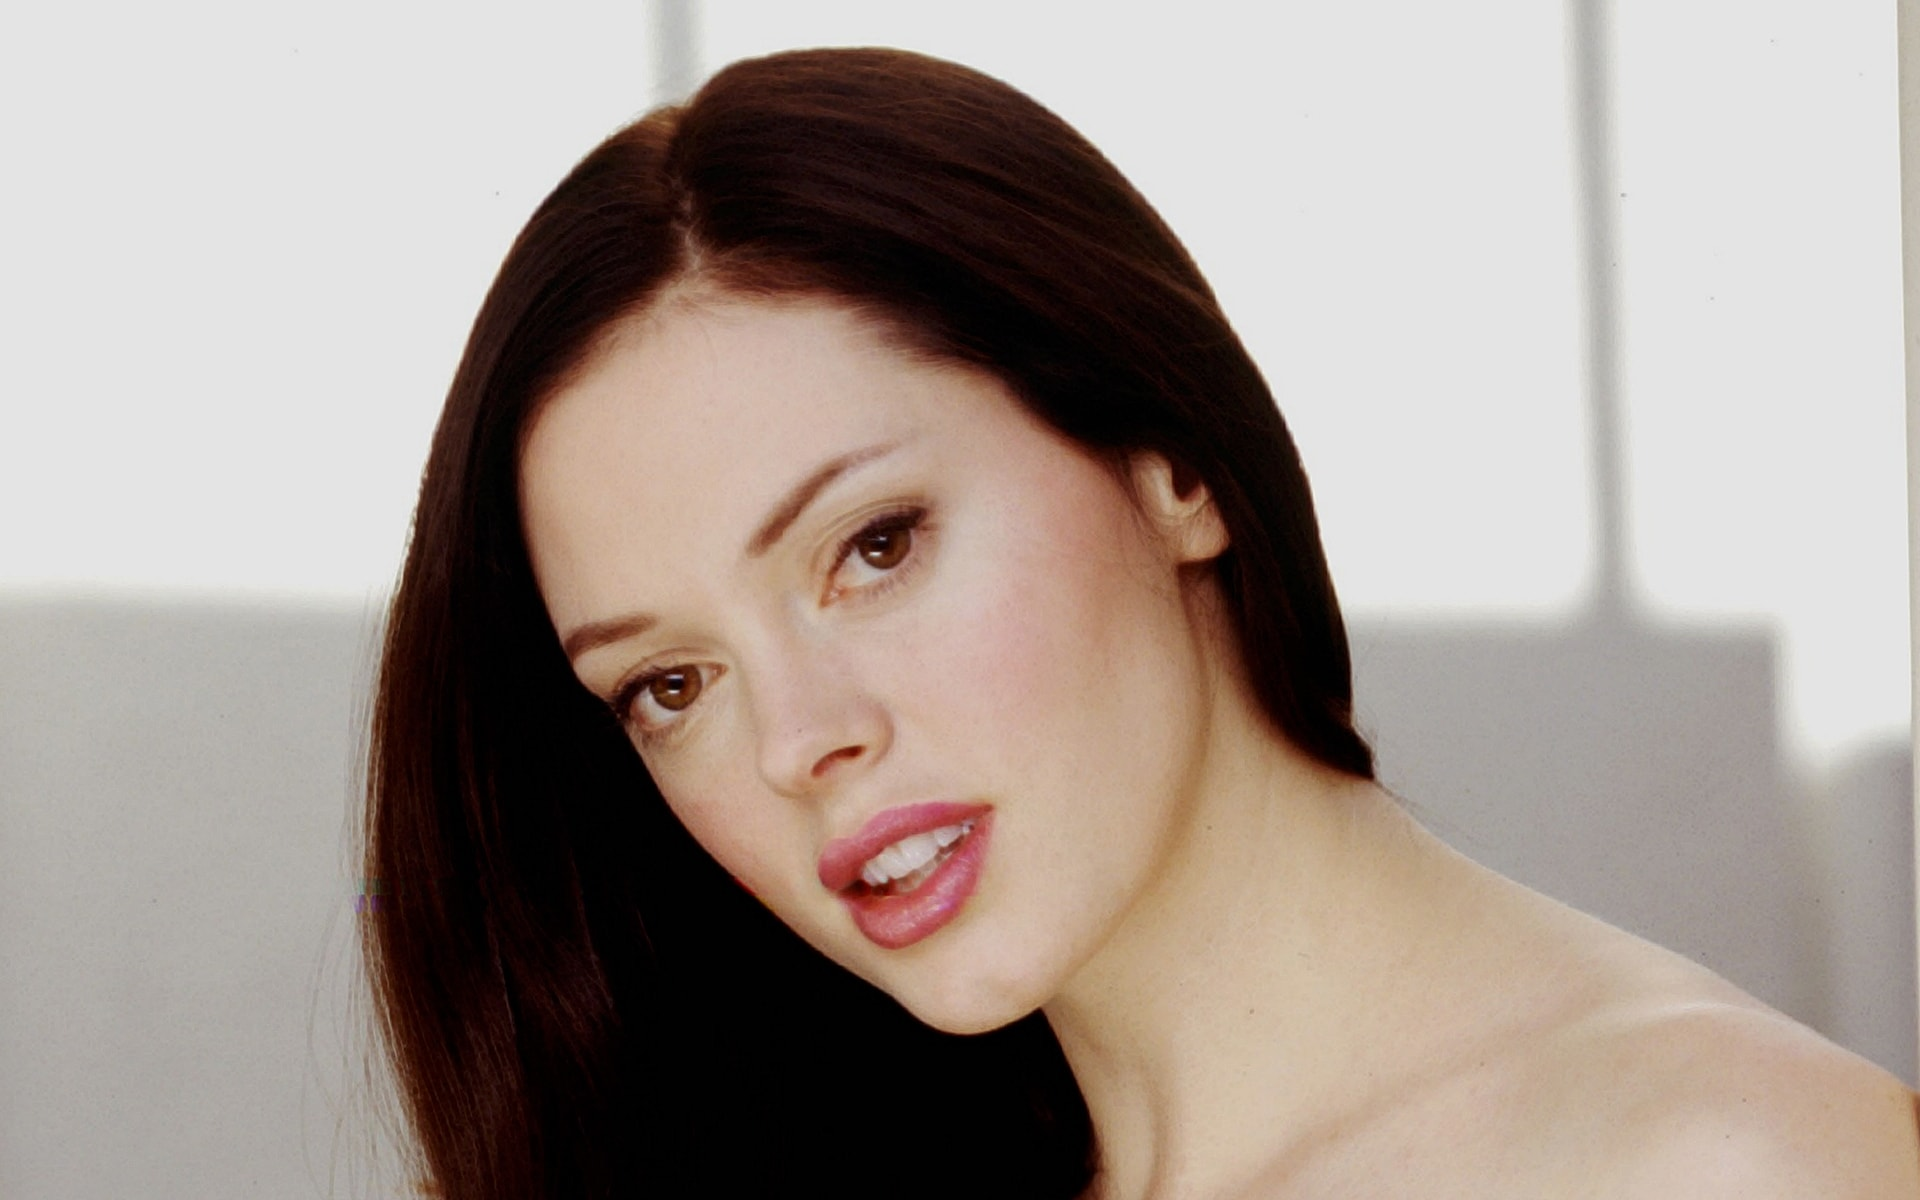 Rose Mcgowan Background